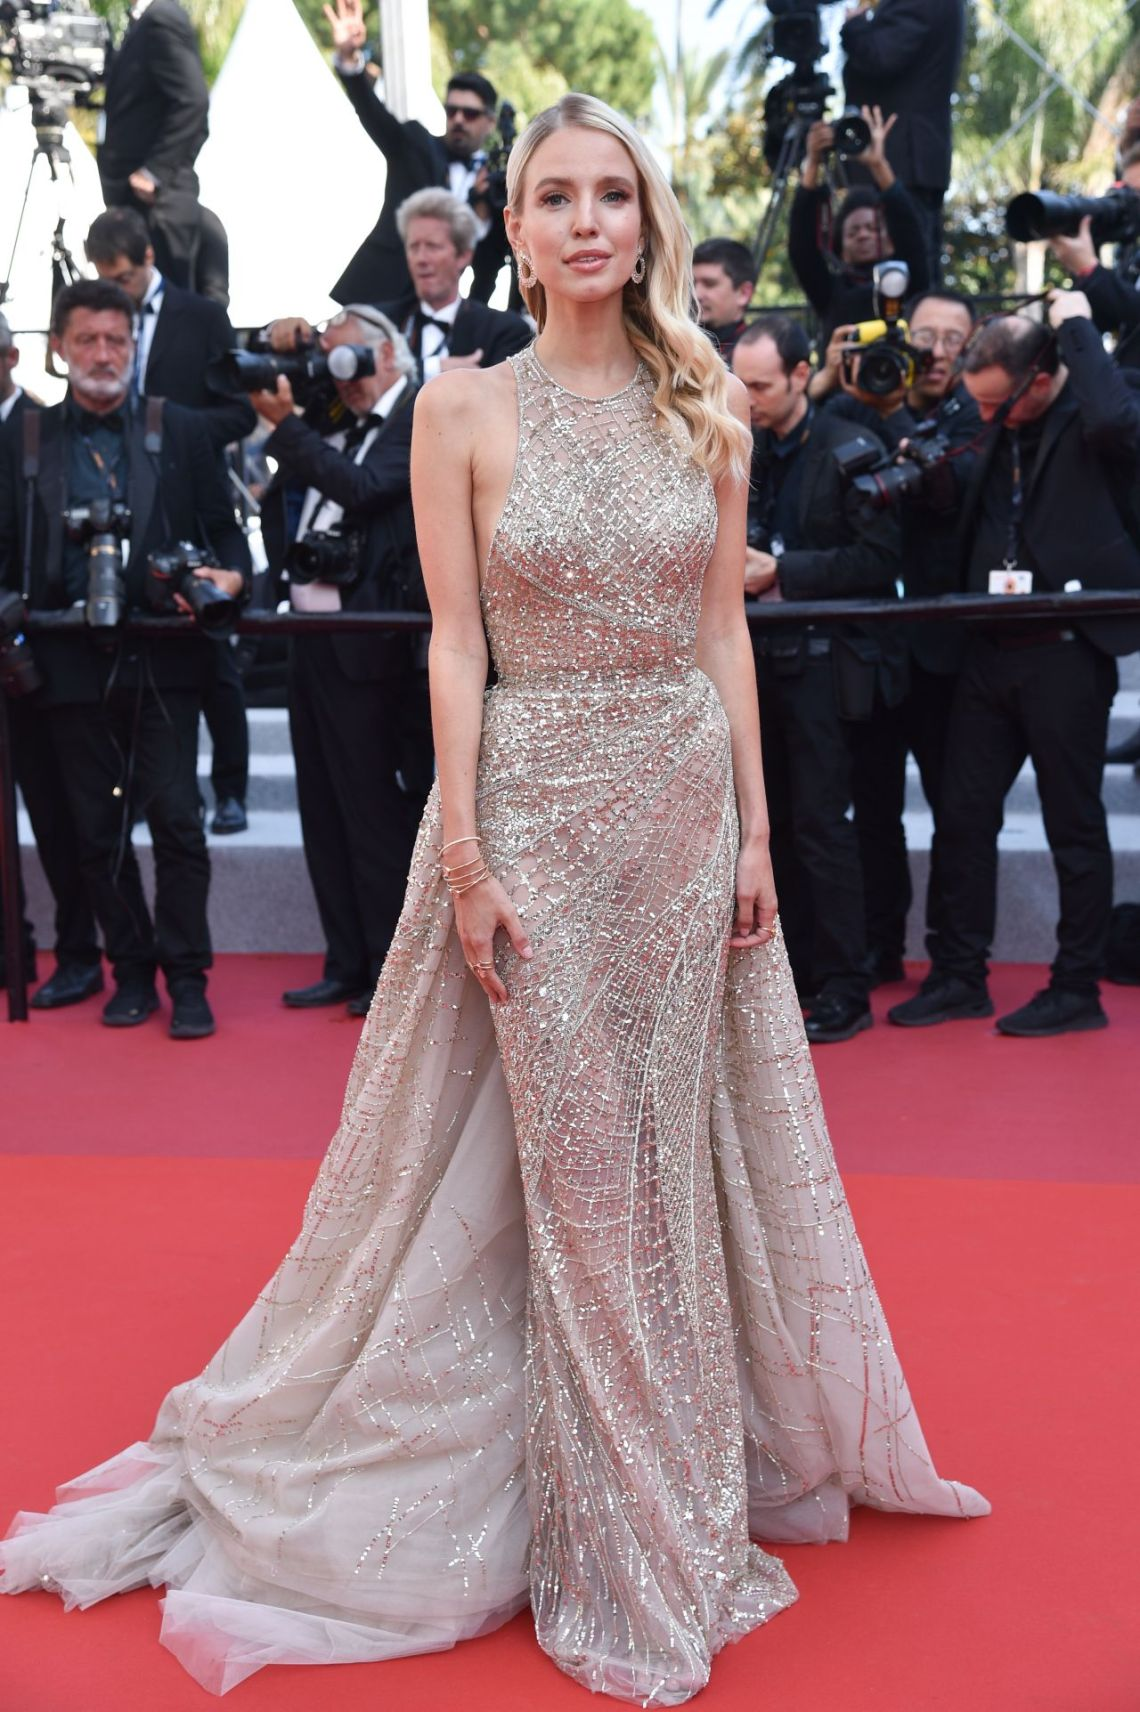 leonie-hanne-the-traitor-red-carpet-at-cannes-film-festival-0